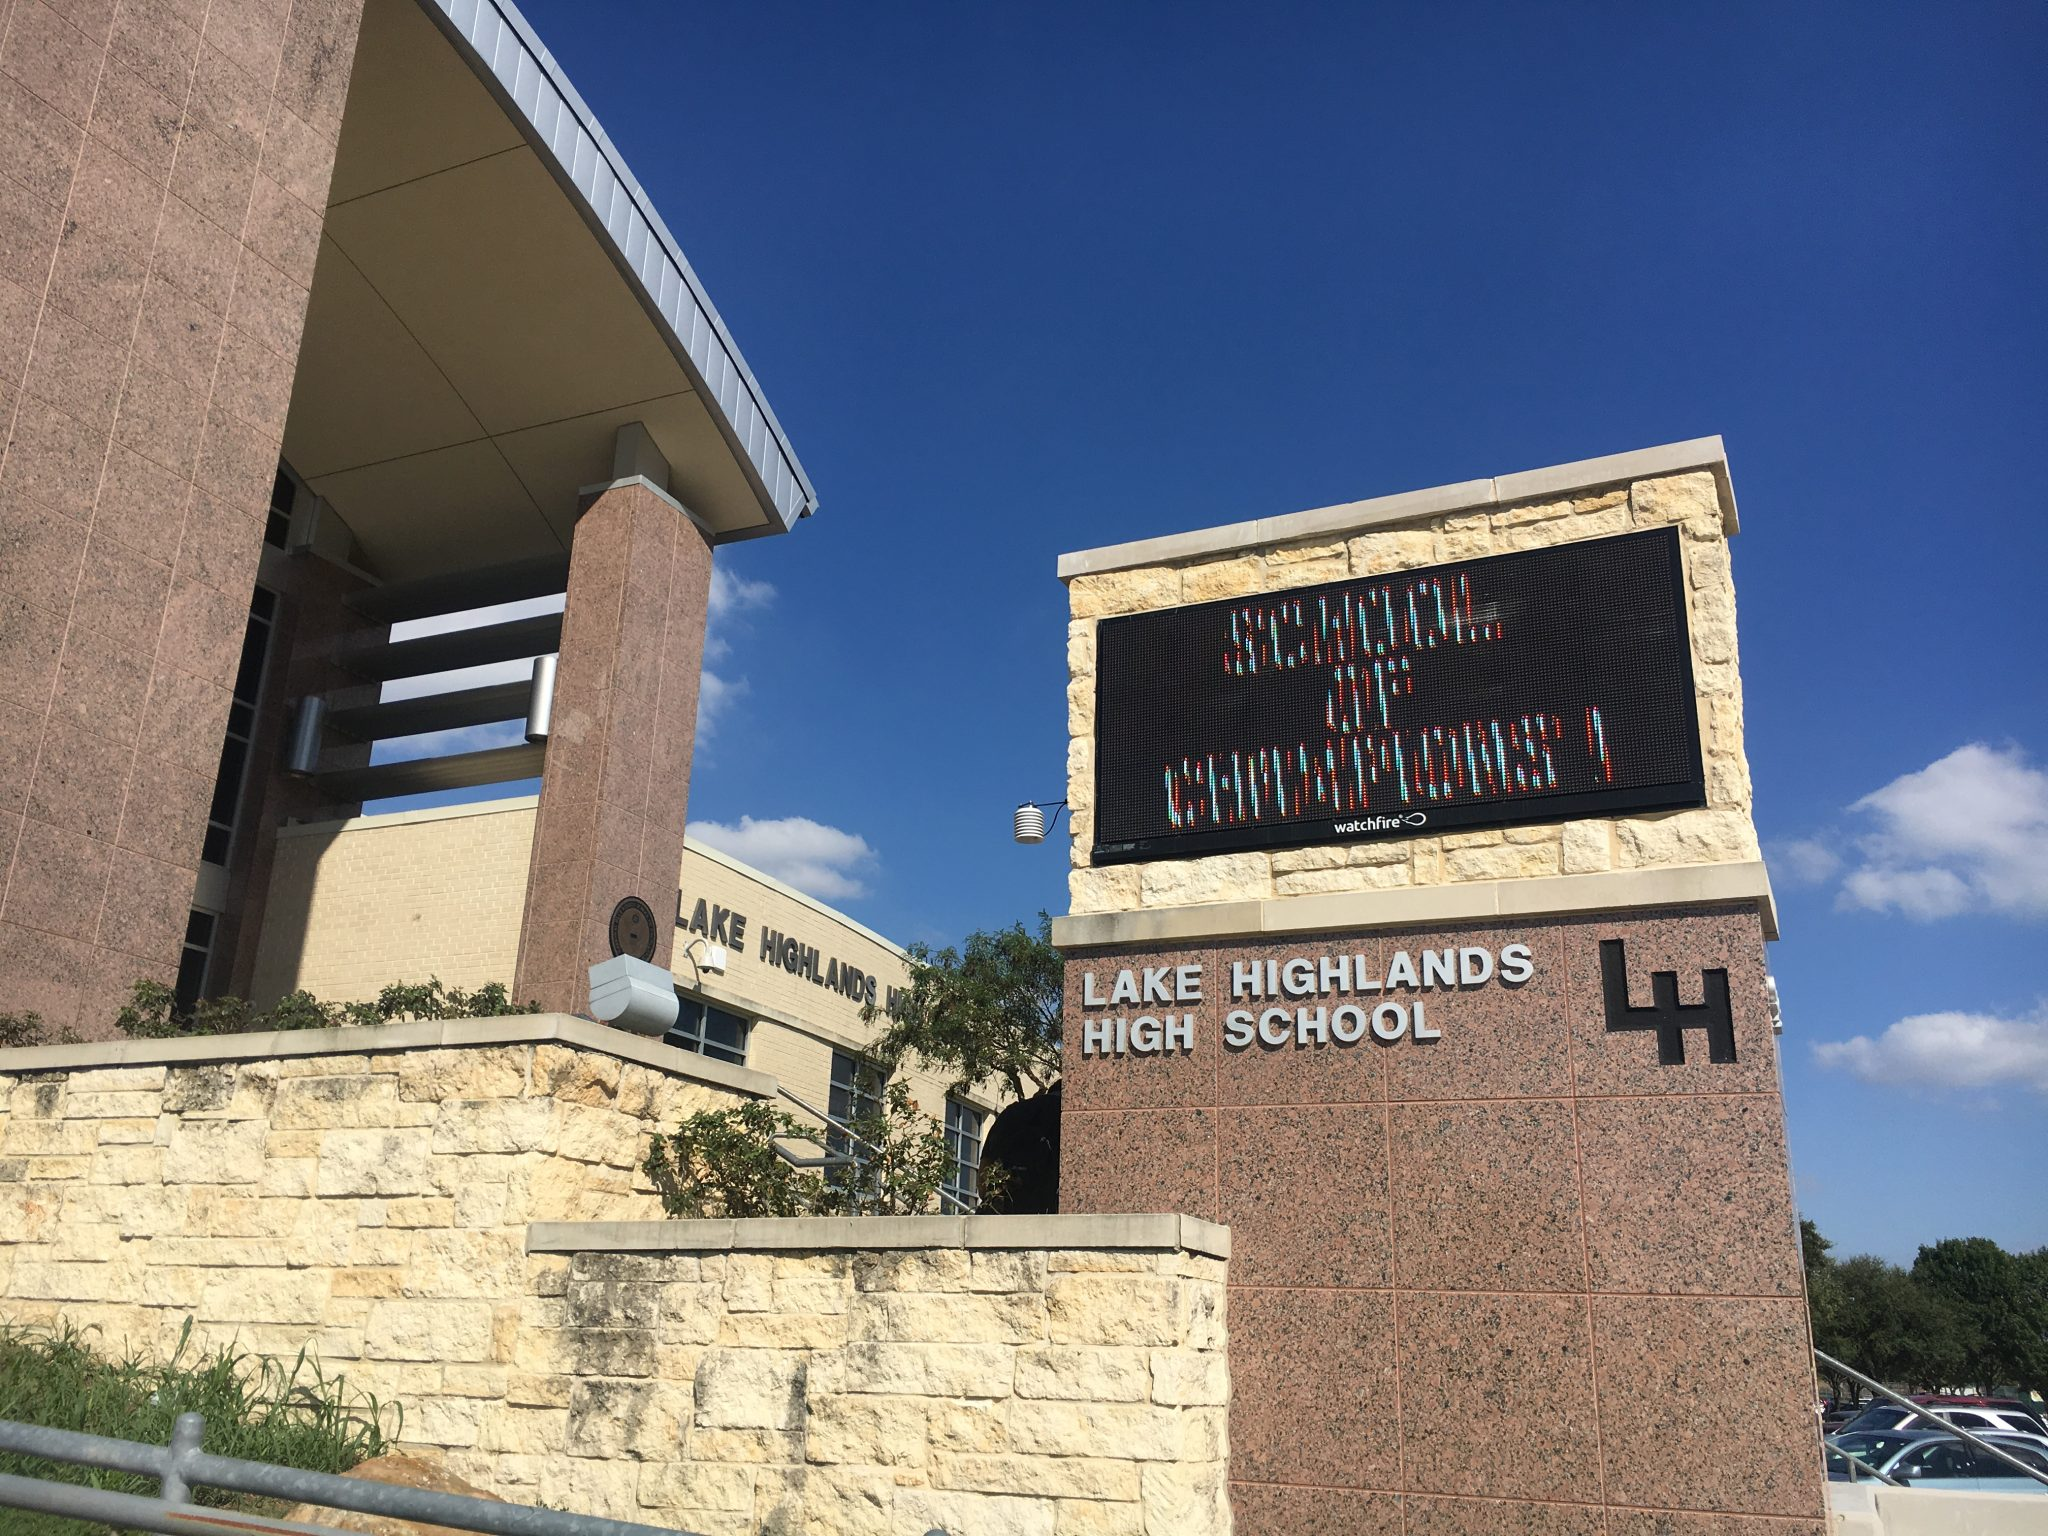 Lake Highlands High School. (Photo by Emily Charrier)